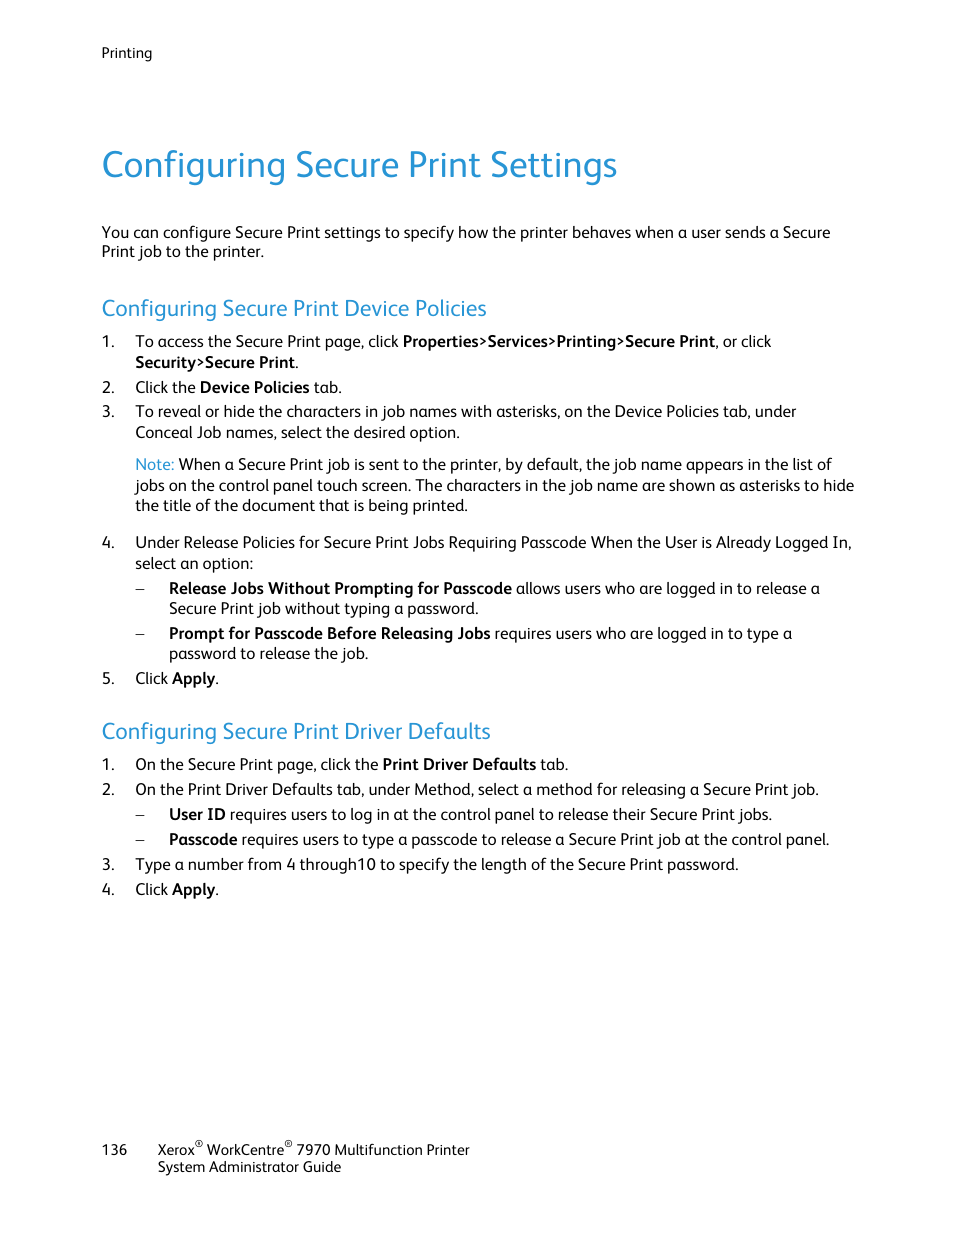 Configuring secure print settings, Configuring secure print device